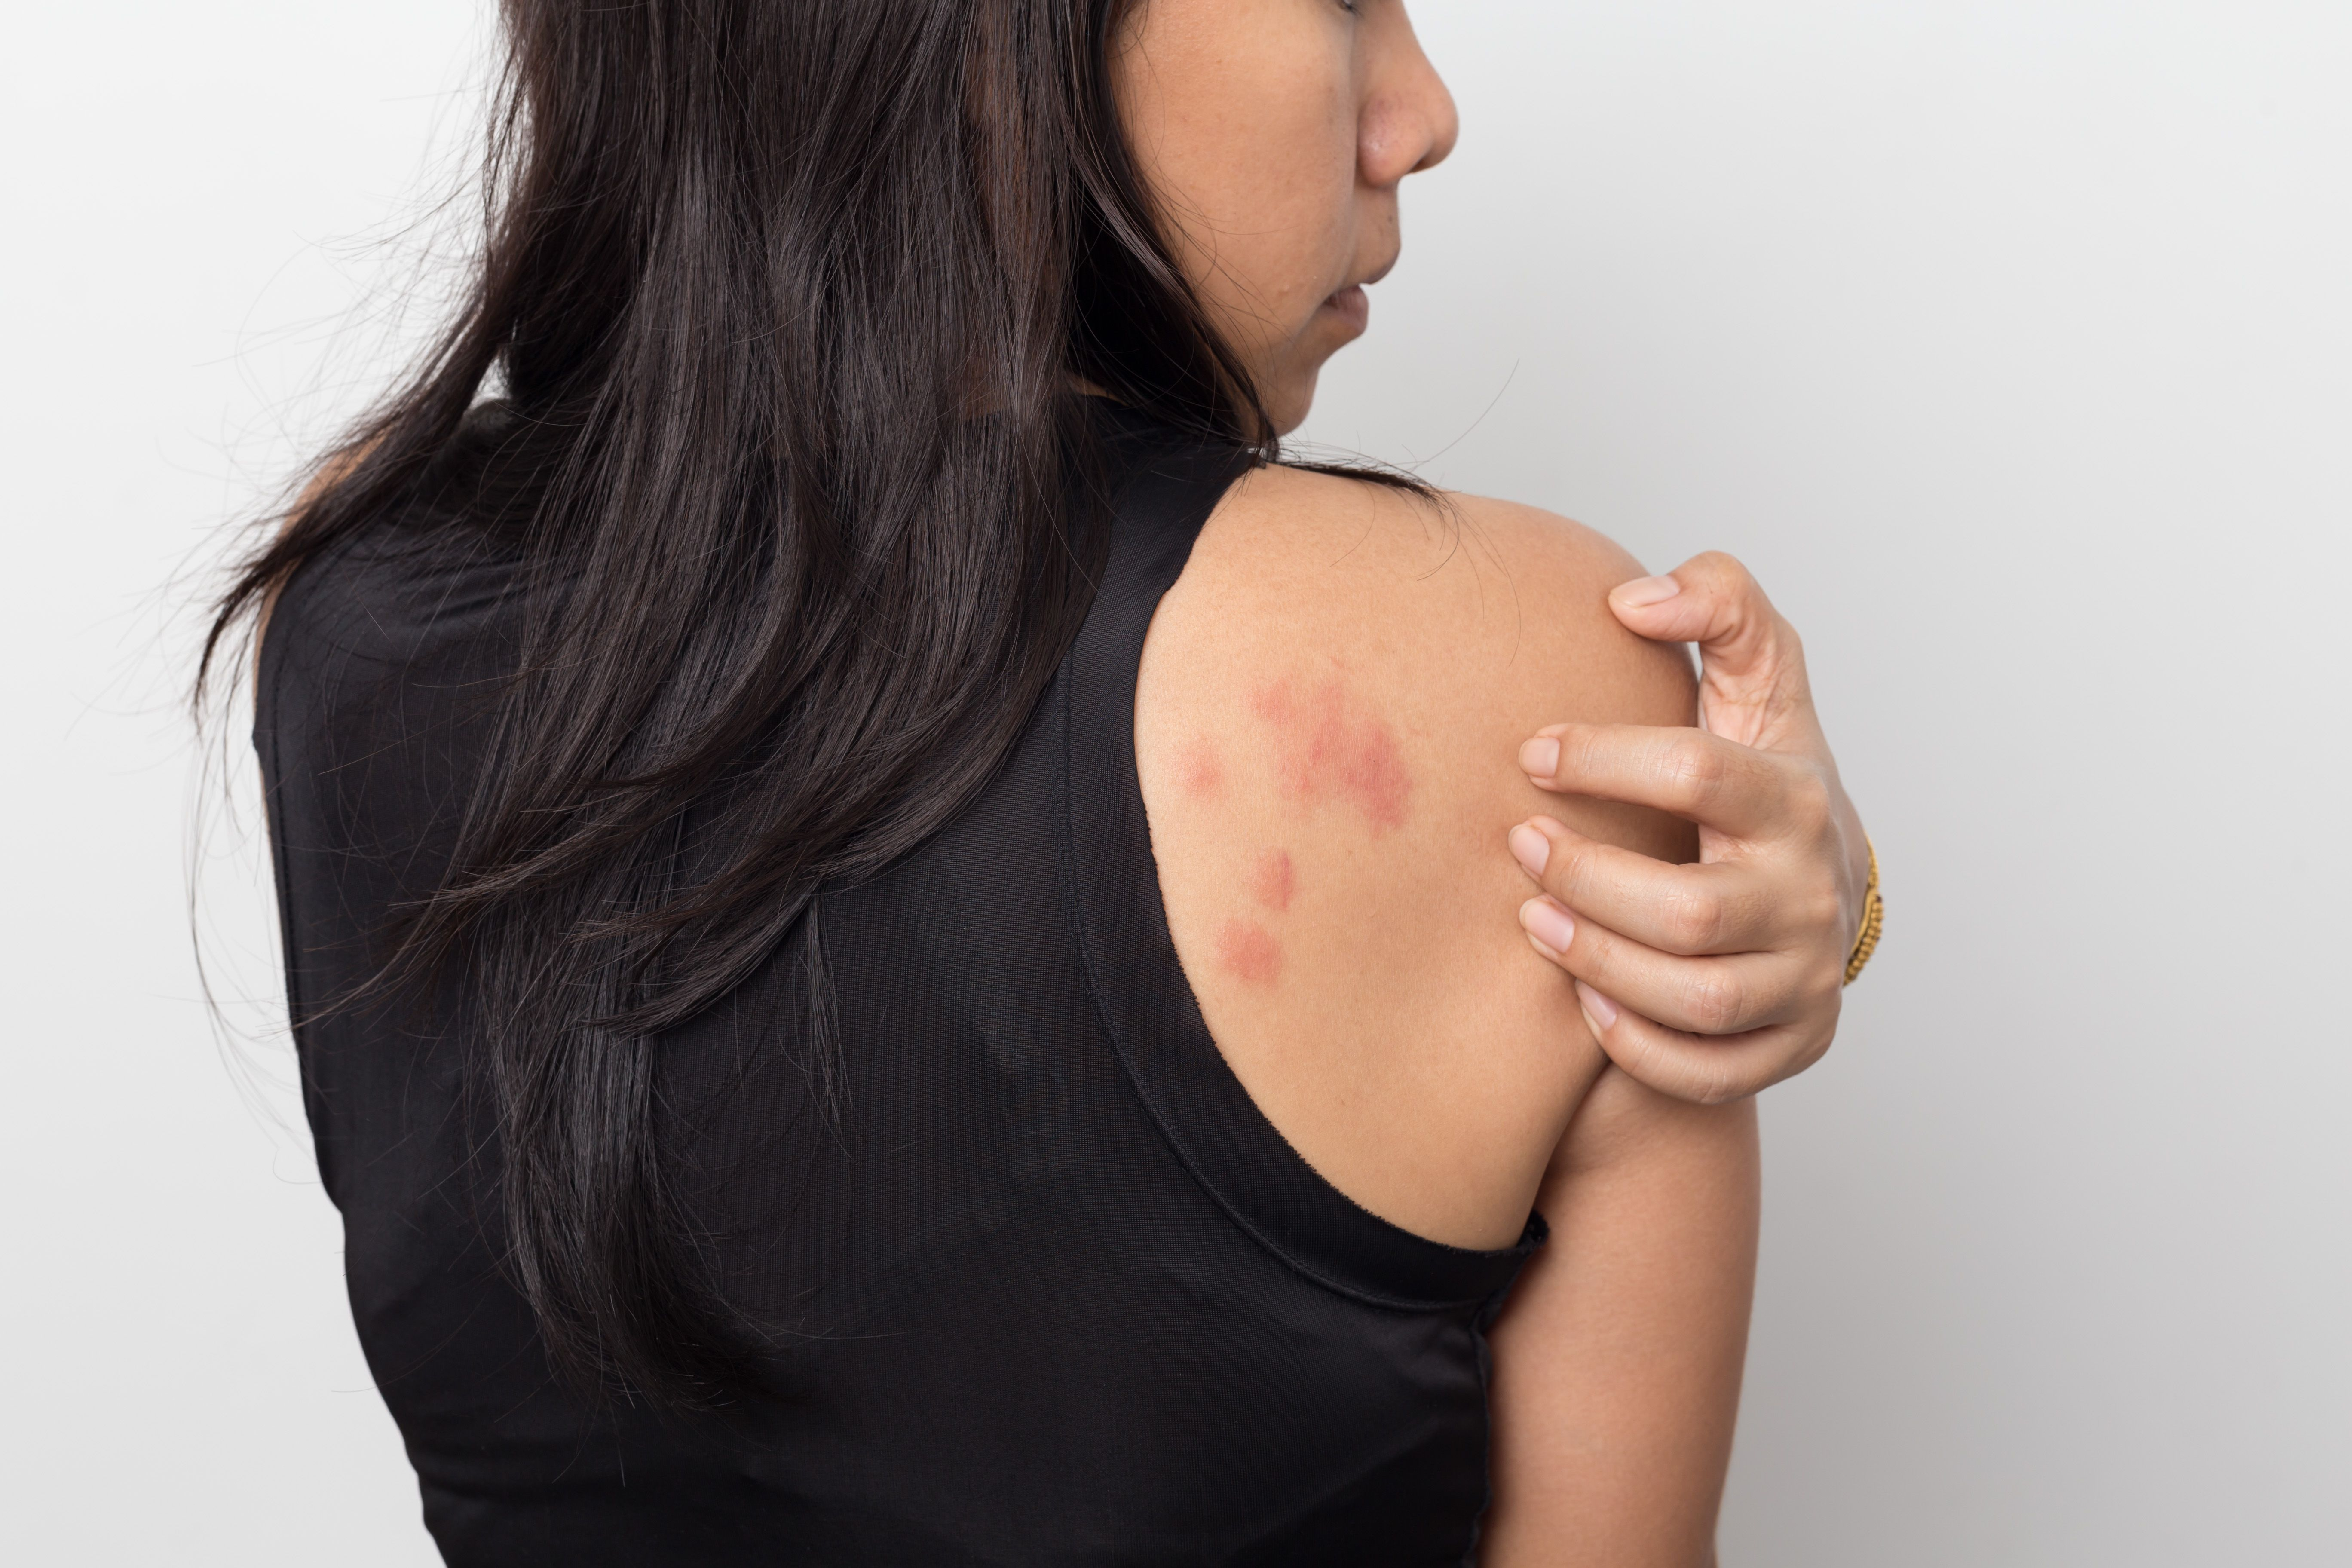 woman showing her skin itching behind , with allergy rash urticaria symptoms